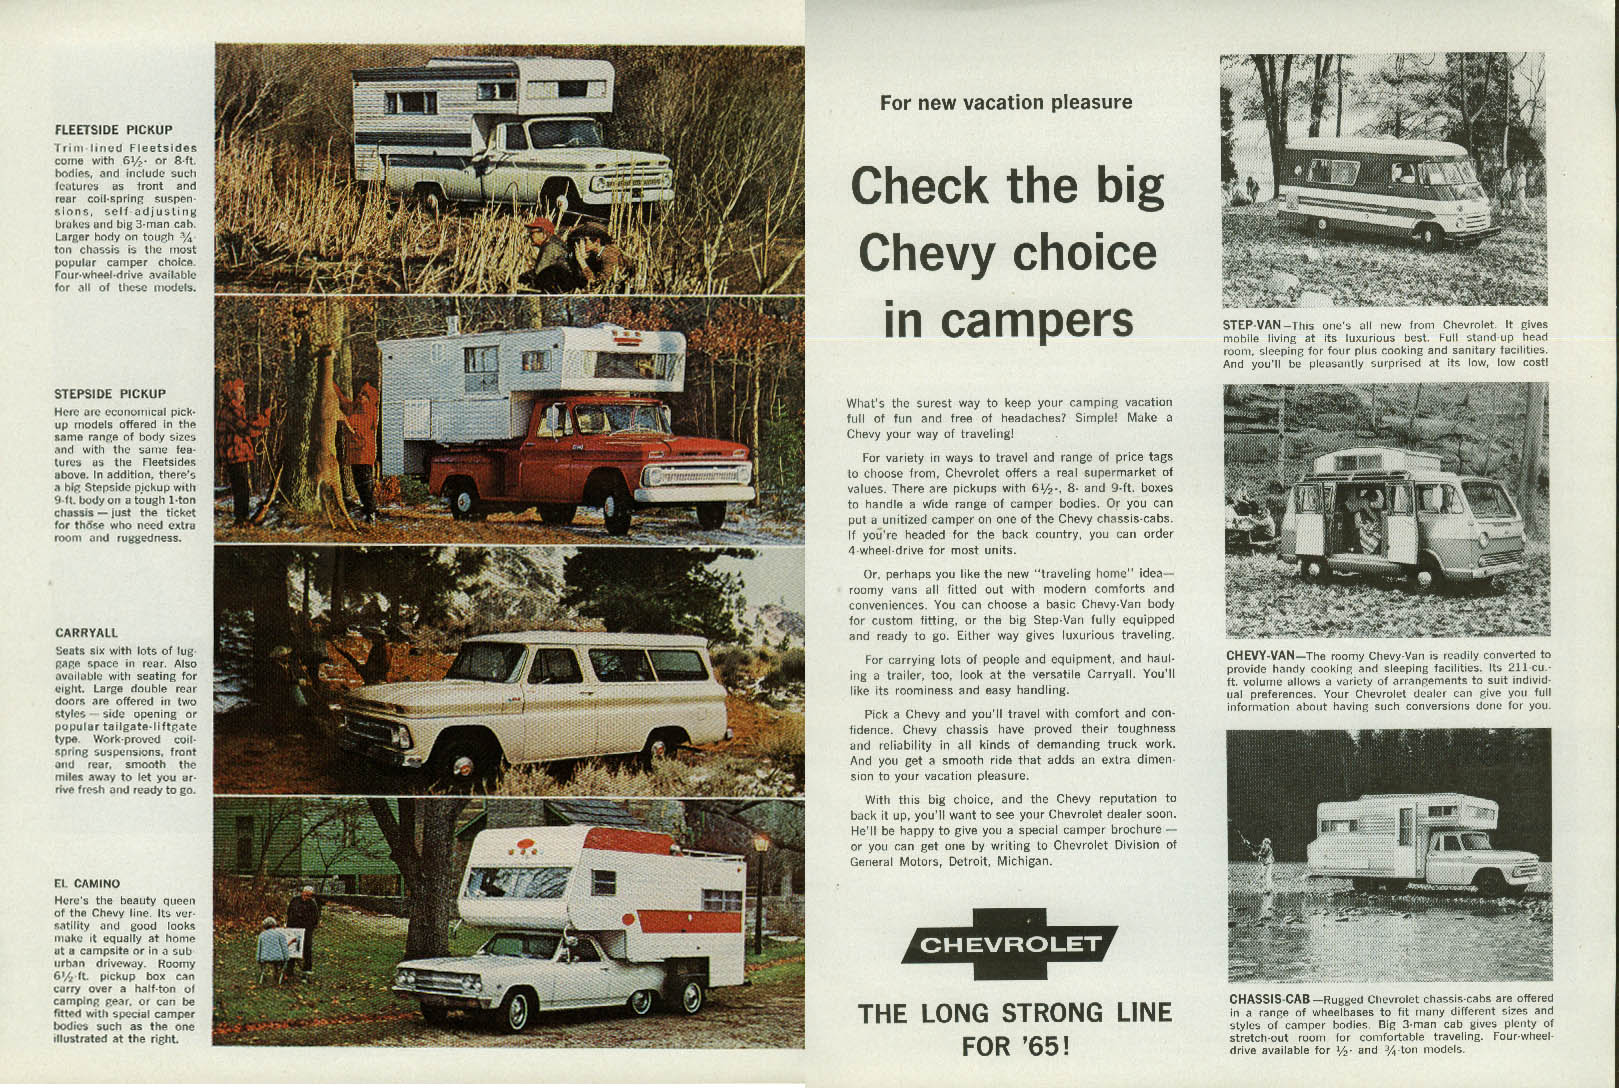 Check the big choice in campers Chevrolet Chevelle El Camino Pickup Van ad 1965